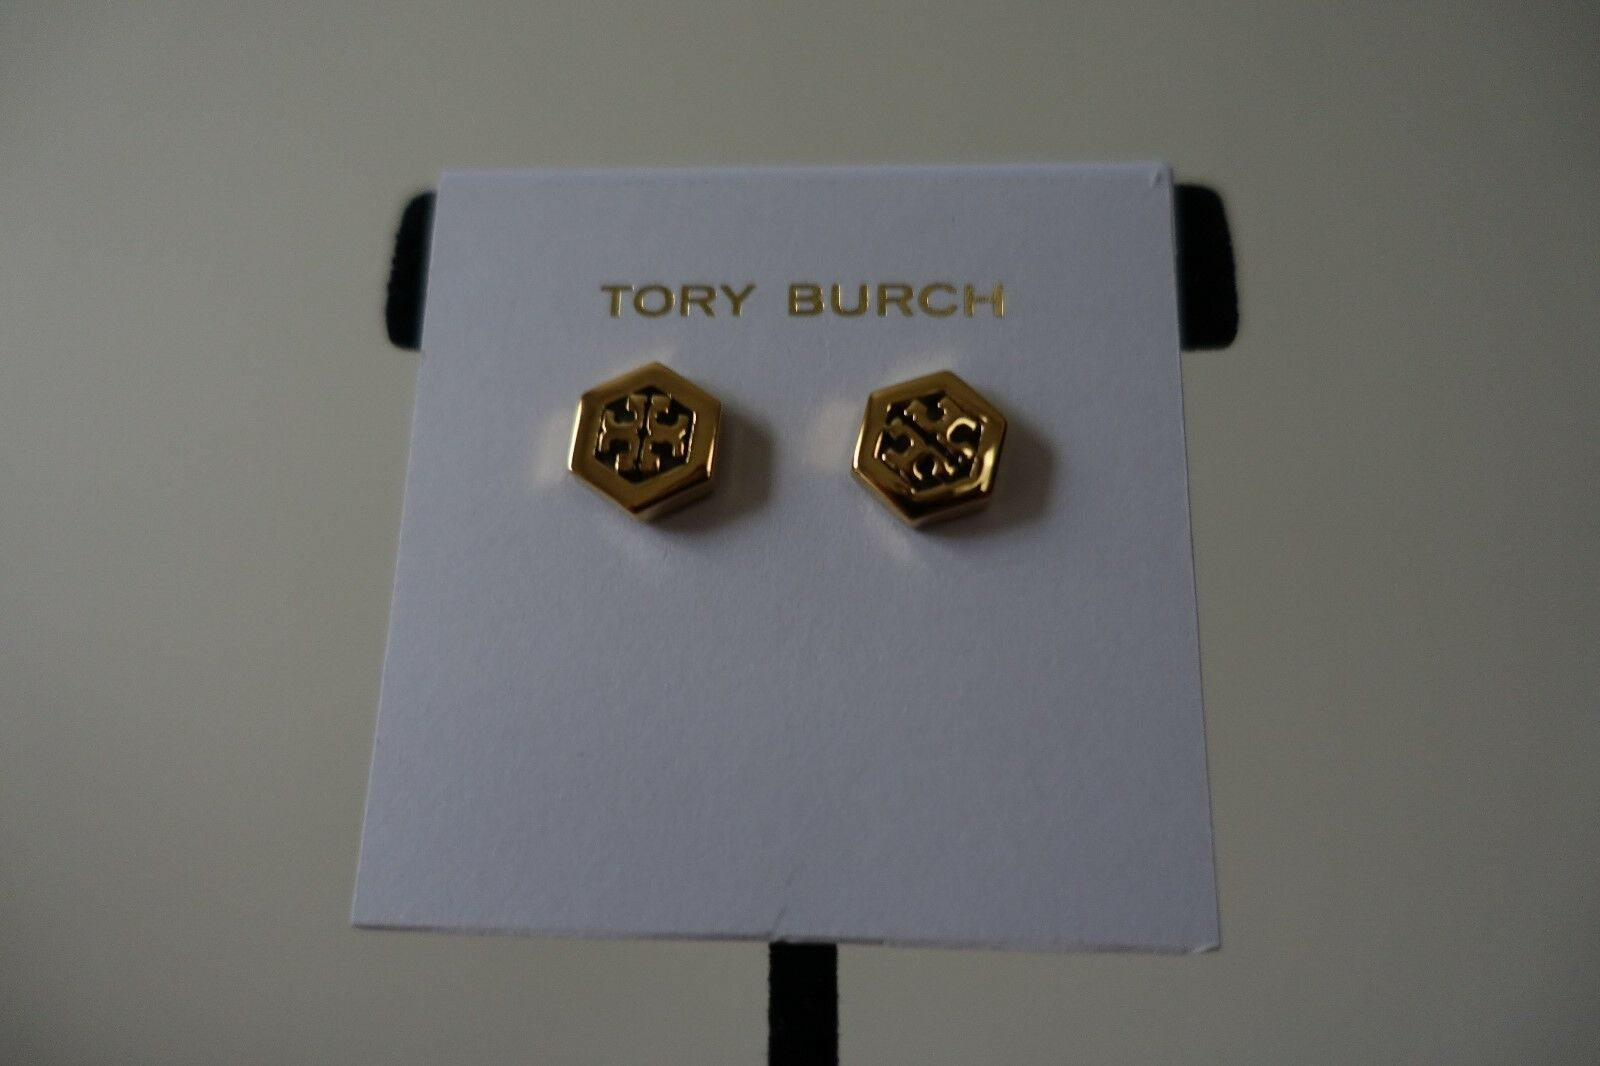 5c0e40a2a27a TORY BURCH STUD EARRINGS gold COLOR. NEW HEX-LOGO nogpbj2591-Jewelry ...